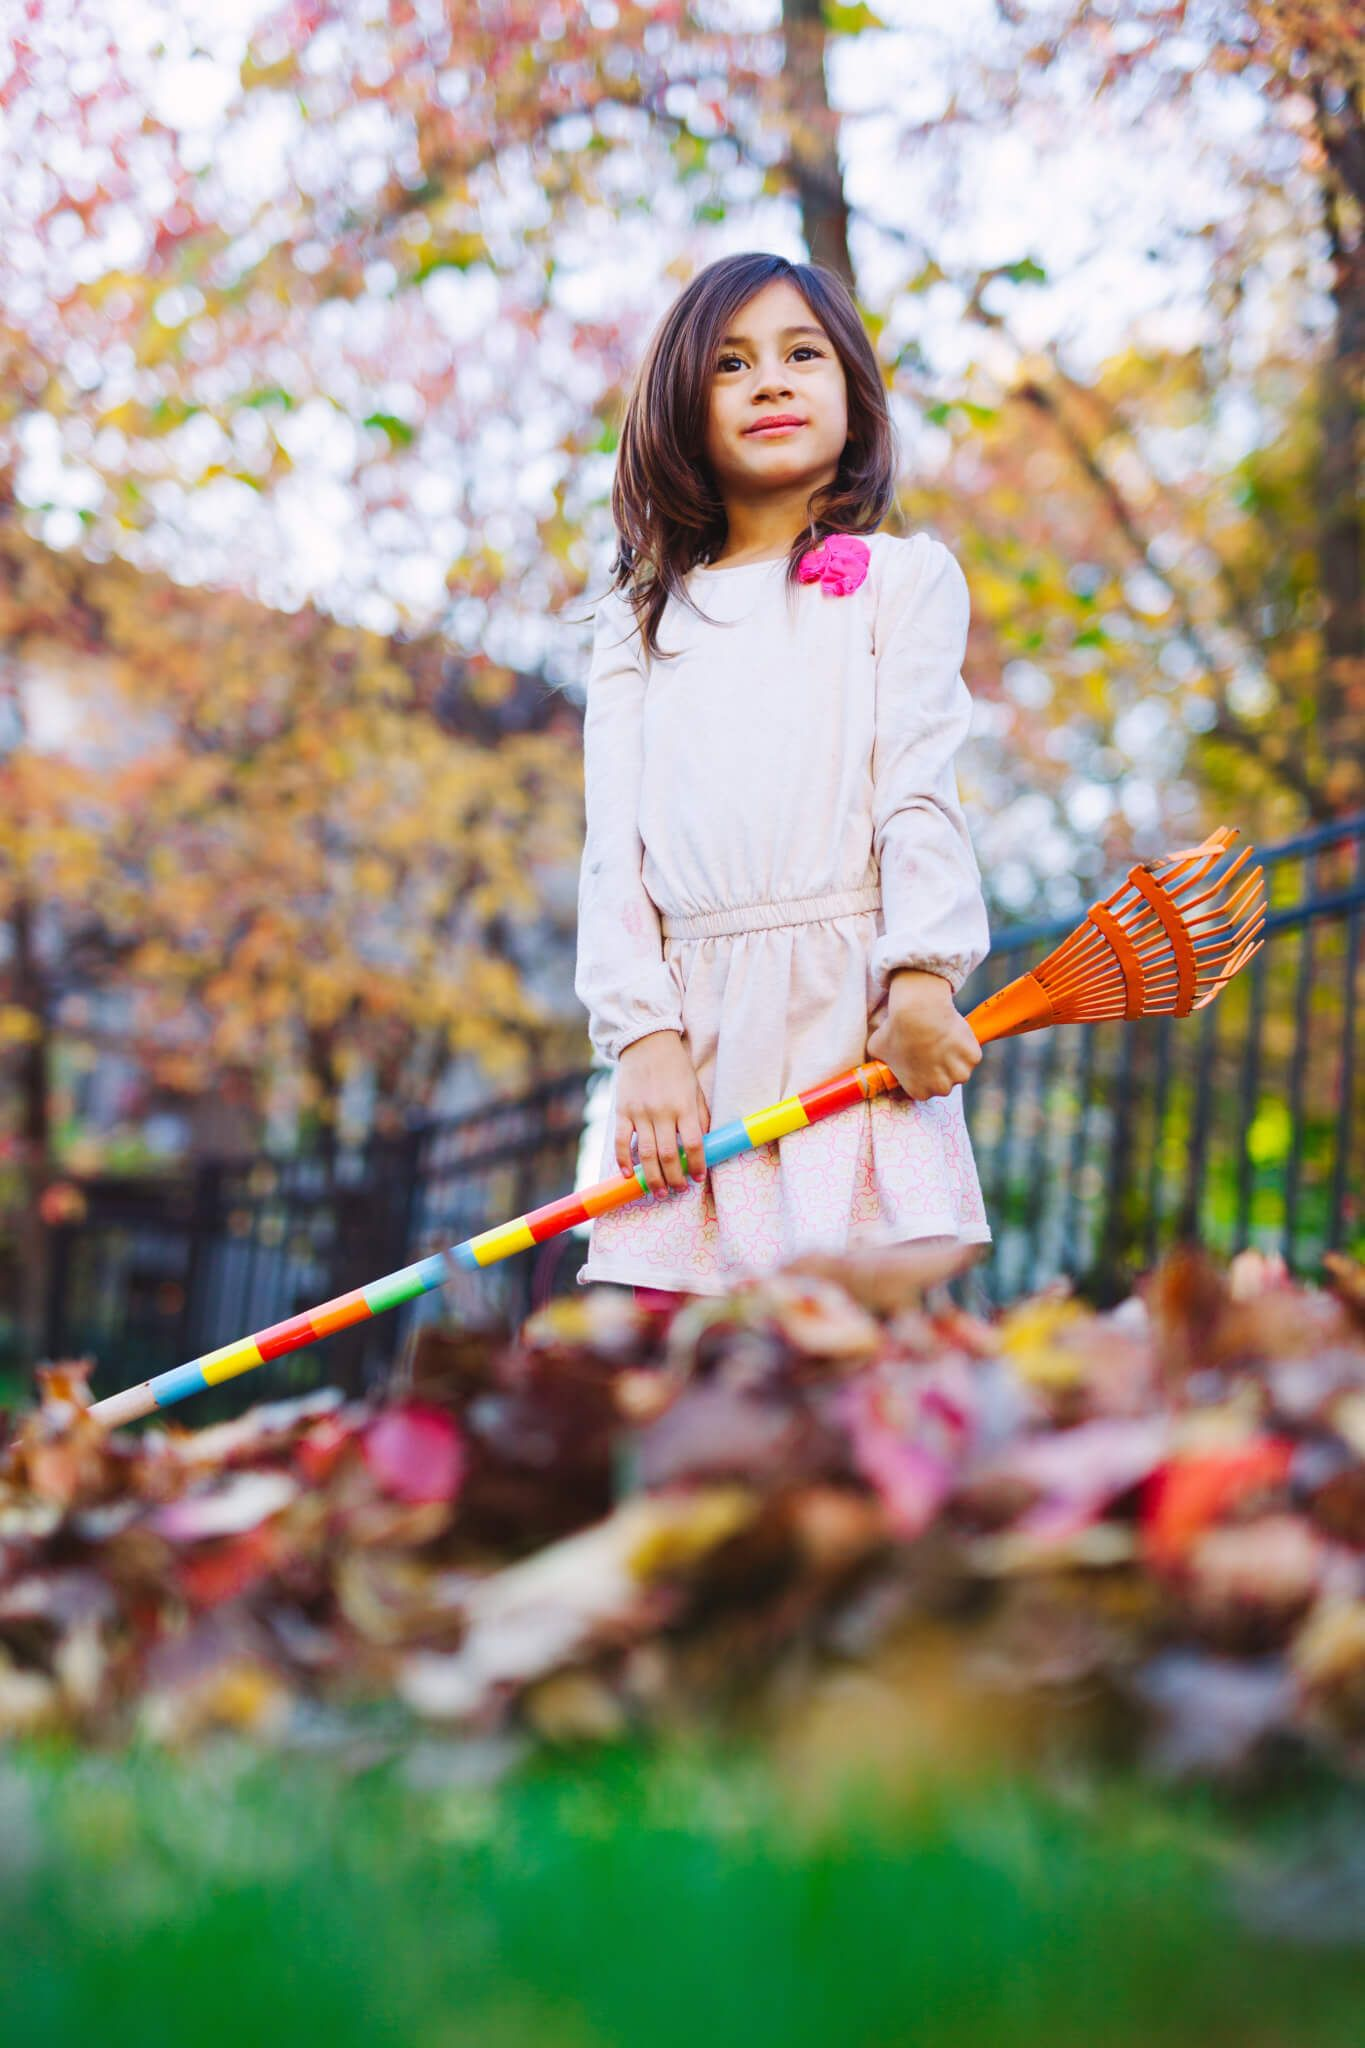 A young girl smiling as she rakes up leaves in a yard.